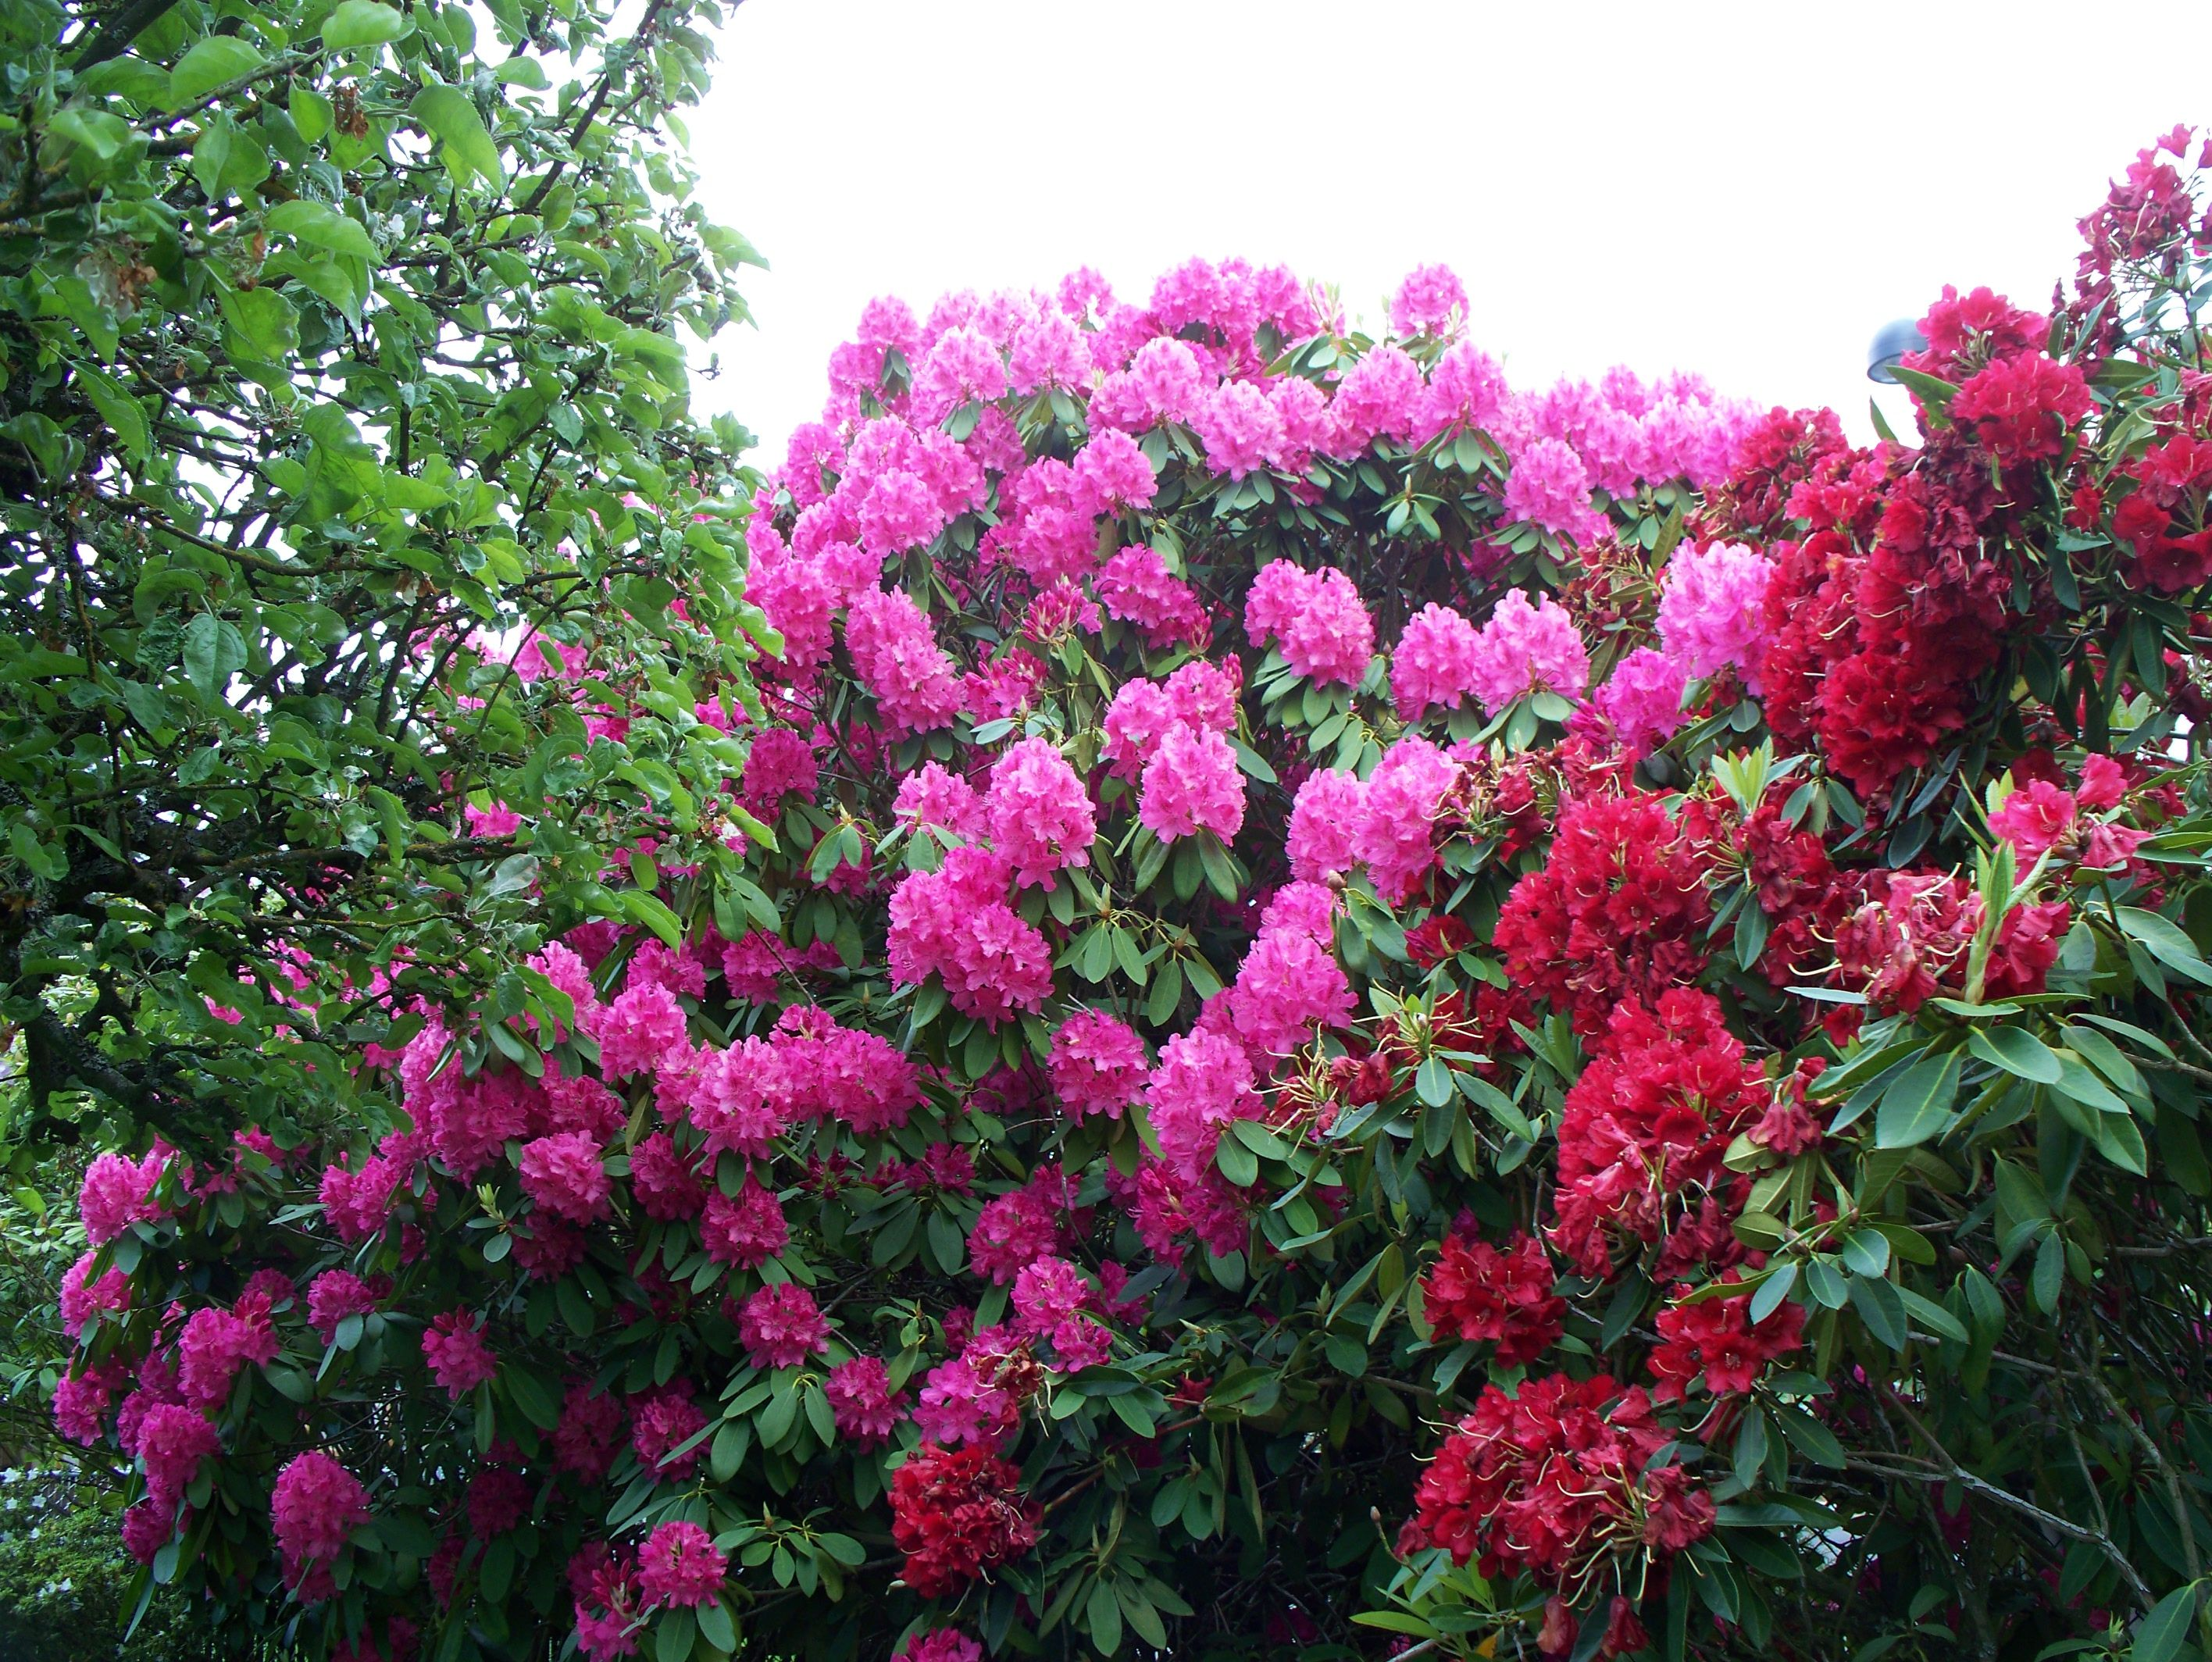 10. Rhododendron